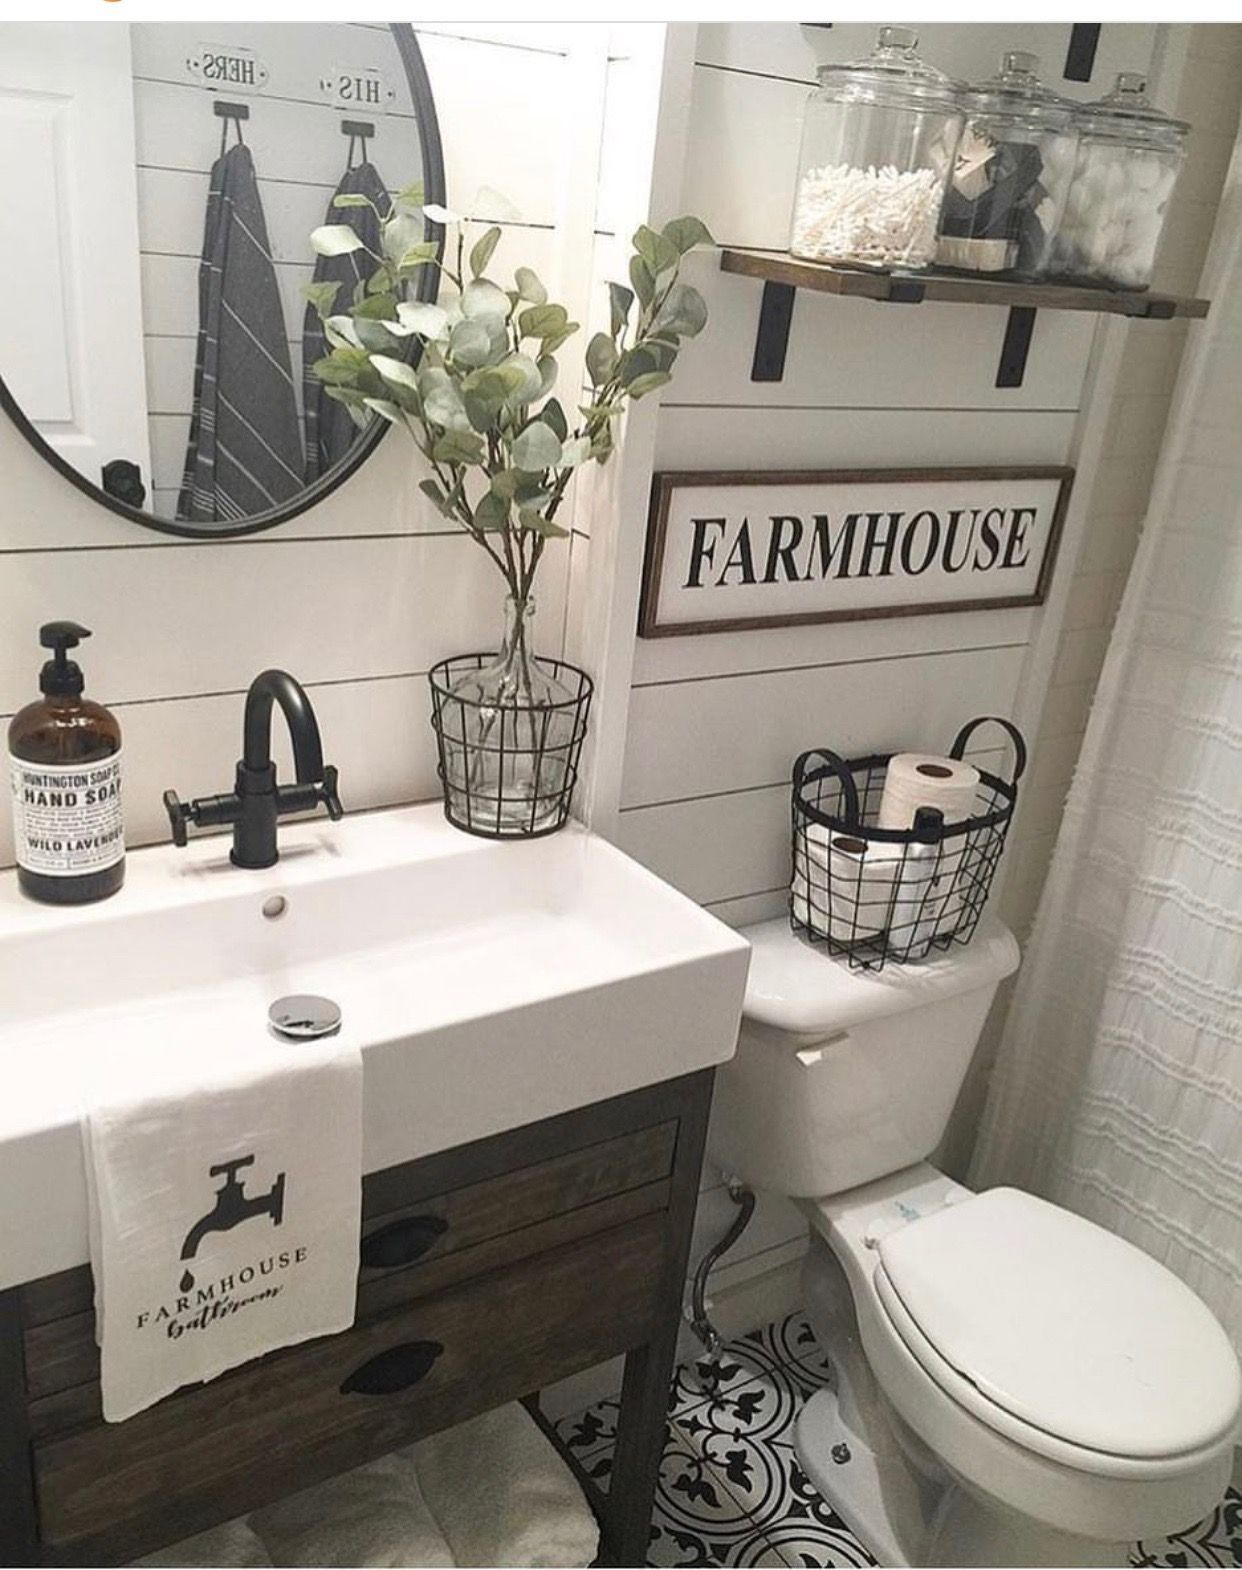 Badezimmer dekor landhausstil countrybathrooms  badideen  pinterest  badezimmer haus und bad